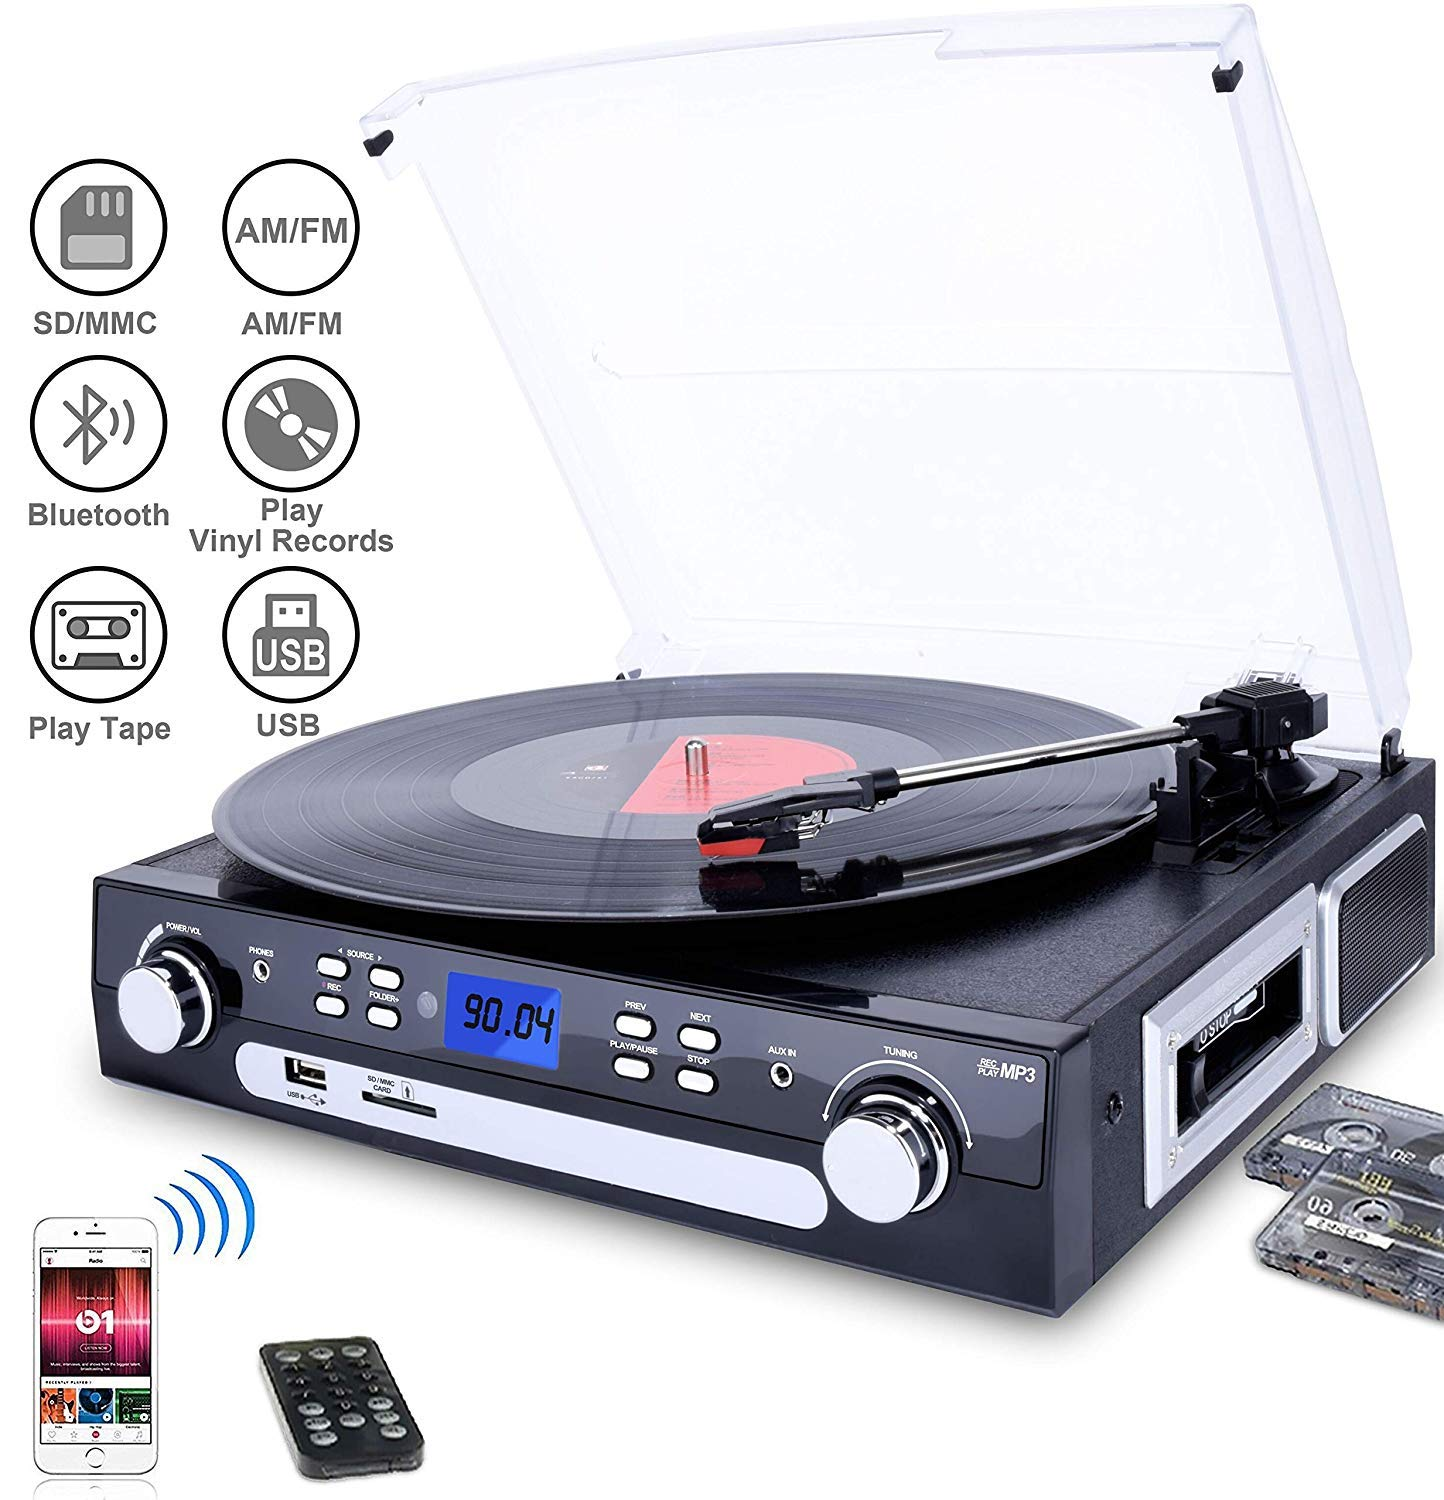 DIGITNOW Vinyl/LP Turntable Record Player, with Bluetooth,AM&FM Radio, Cassette Tape, Aux in, USB/SD Encoding & Playing MP3/ Built-in Stereo Speakers, 3.5mm Headphone Jack,Remote and LCD